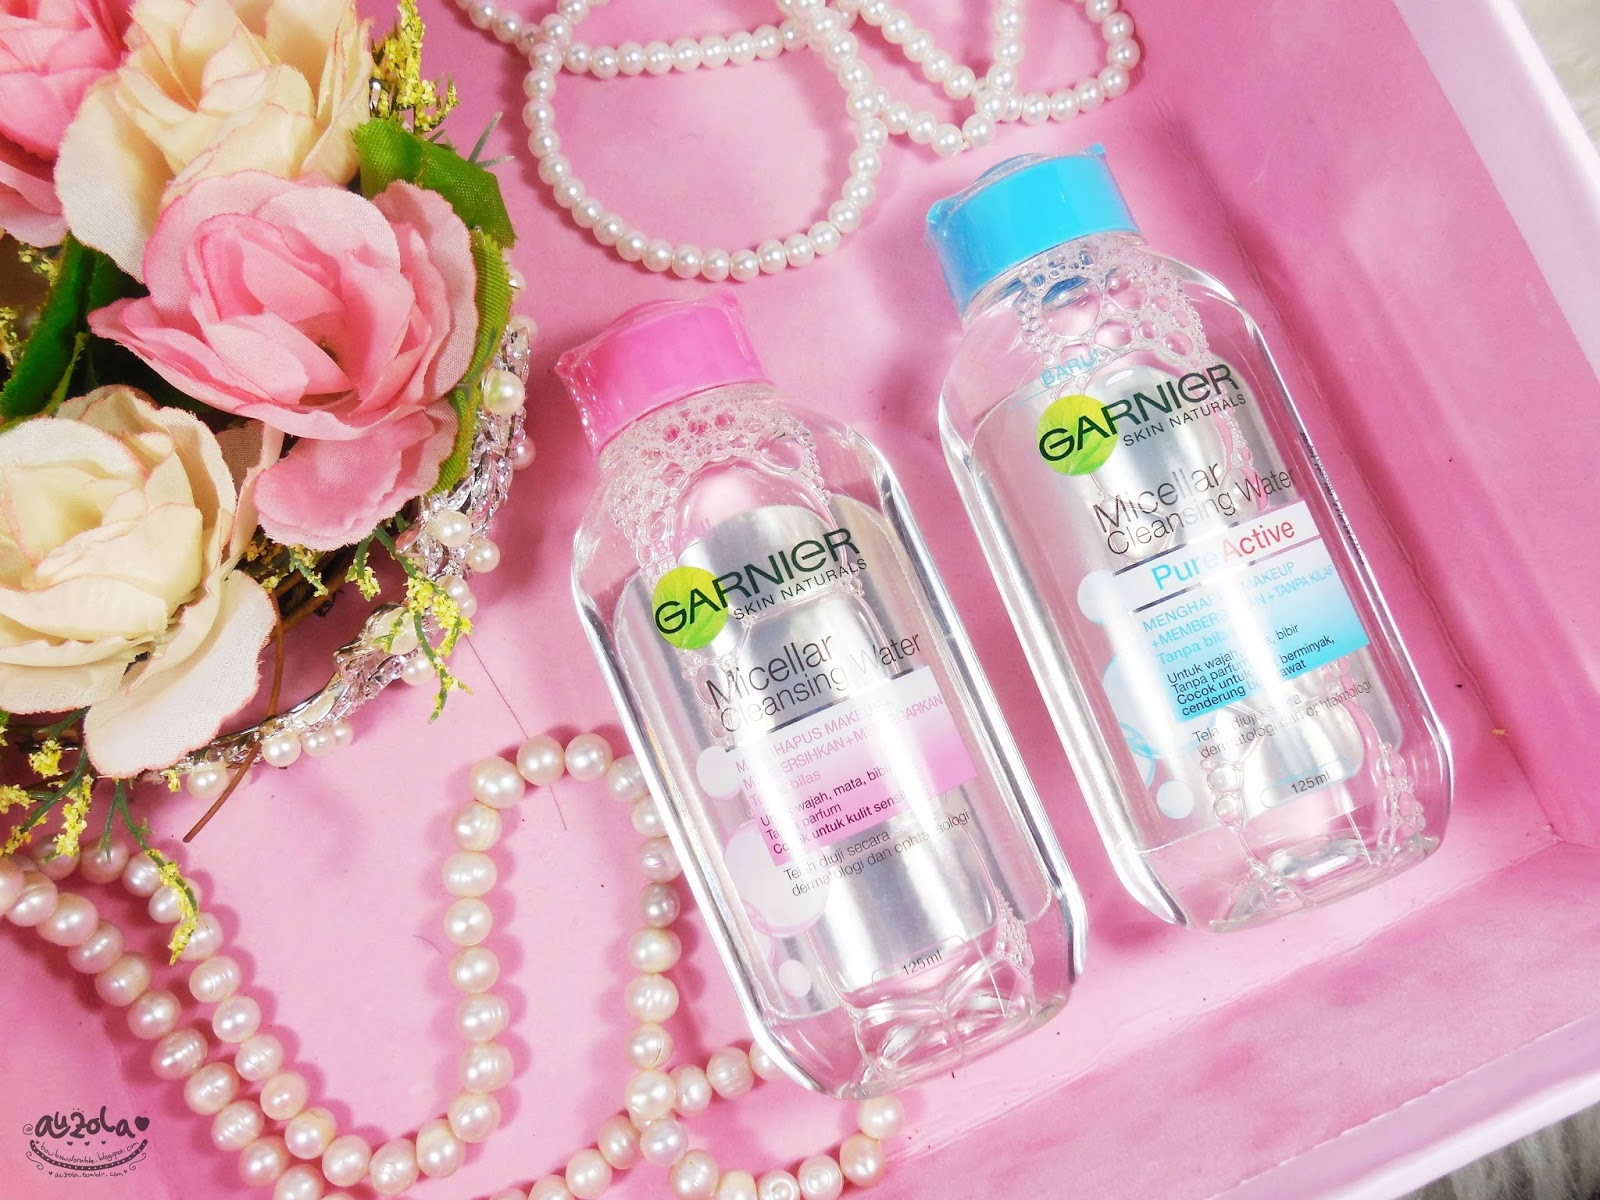 SkinActive Micellar Cleansing Water All-in-1 Cleanser & Makeup Remover by garnier #22